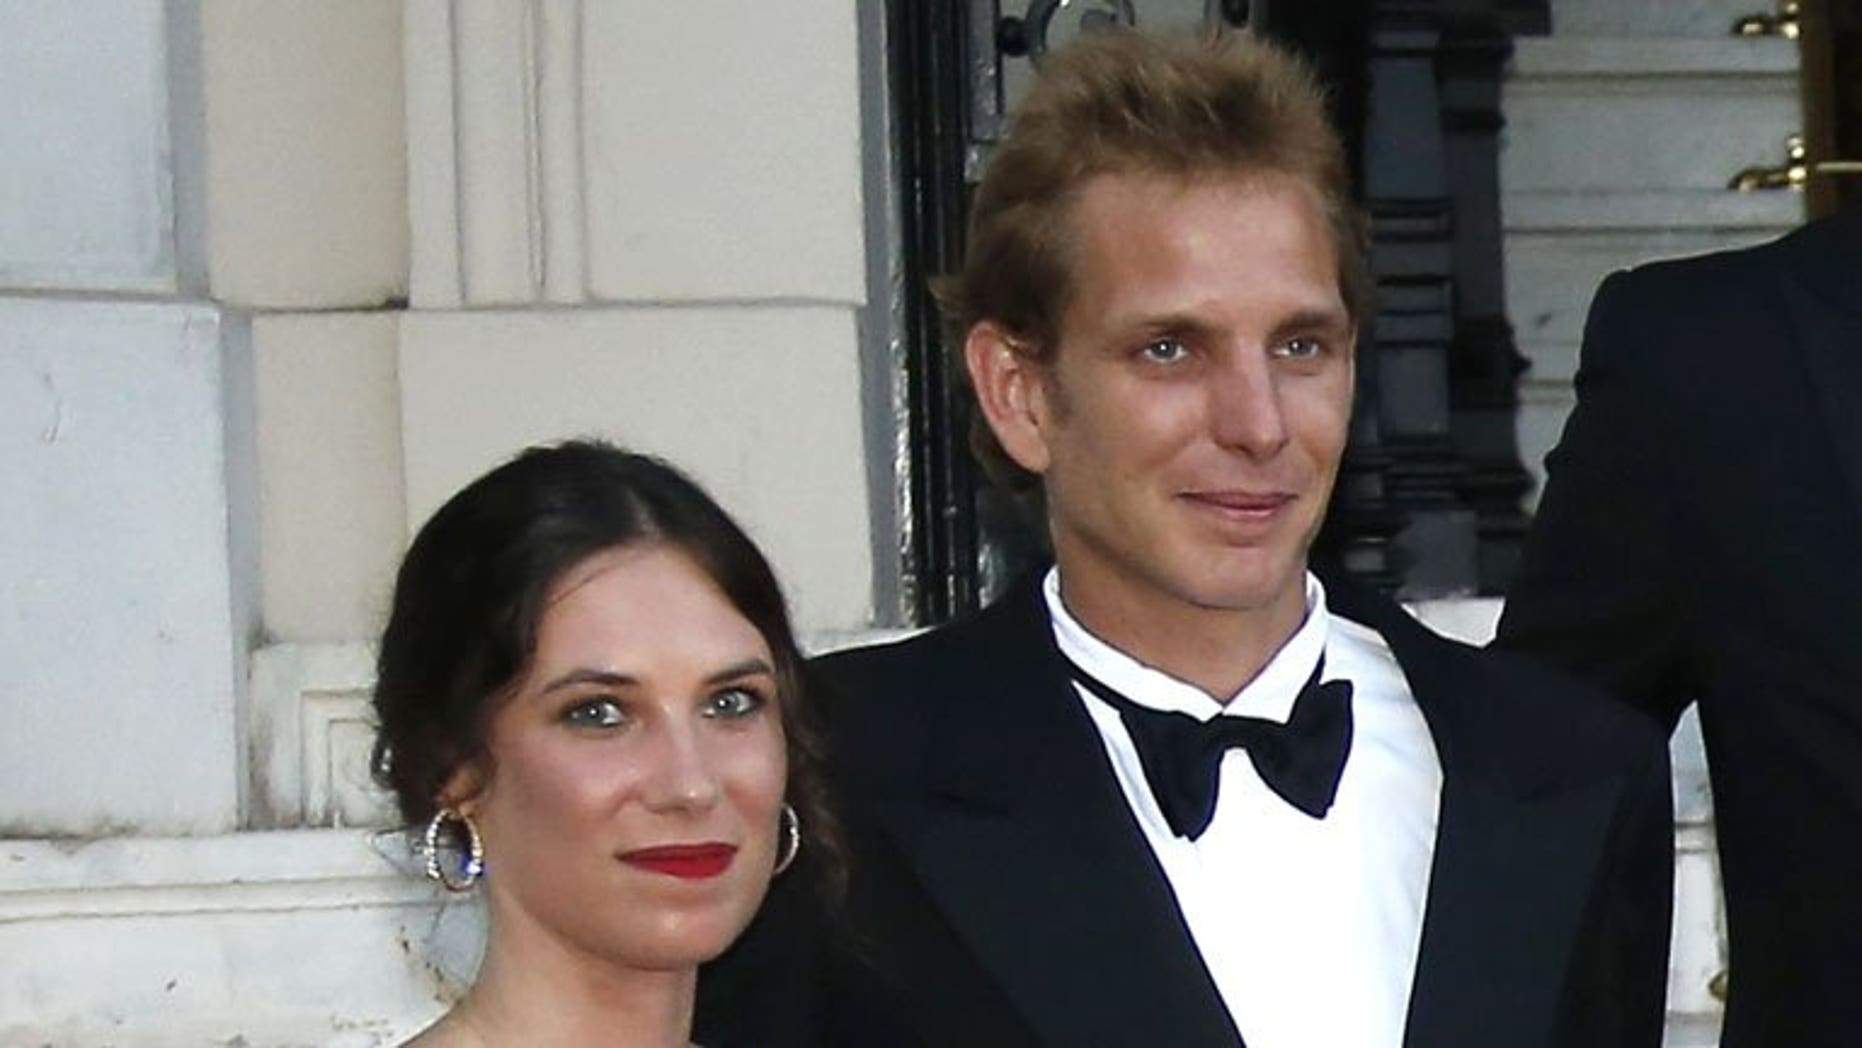 """Andrea Casiraghi, the son of Princess Caroline of Hanover, and his partner Tatiana Santo Domingo as they arrive to attend the """"Love Ball"""" in Monaco on July 27, 2013. Casiraghi, eldest son of Princess Caroline of Monaco, is to marry his Colombian girlfriend on August 31."""